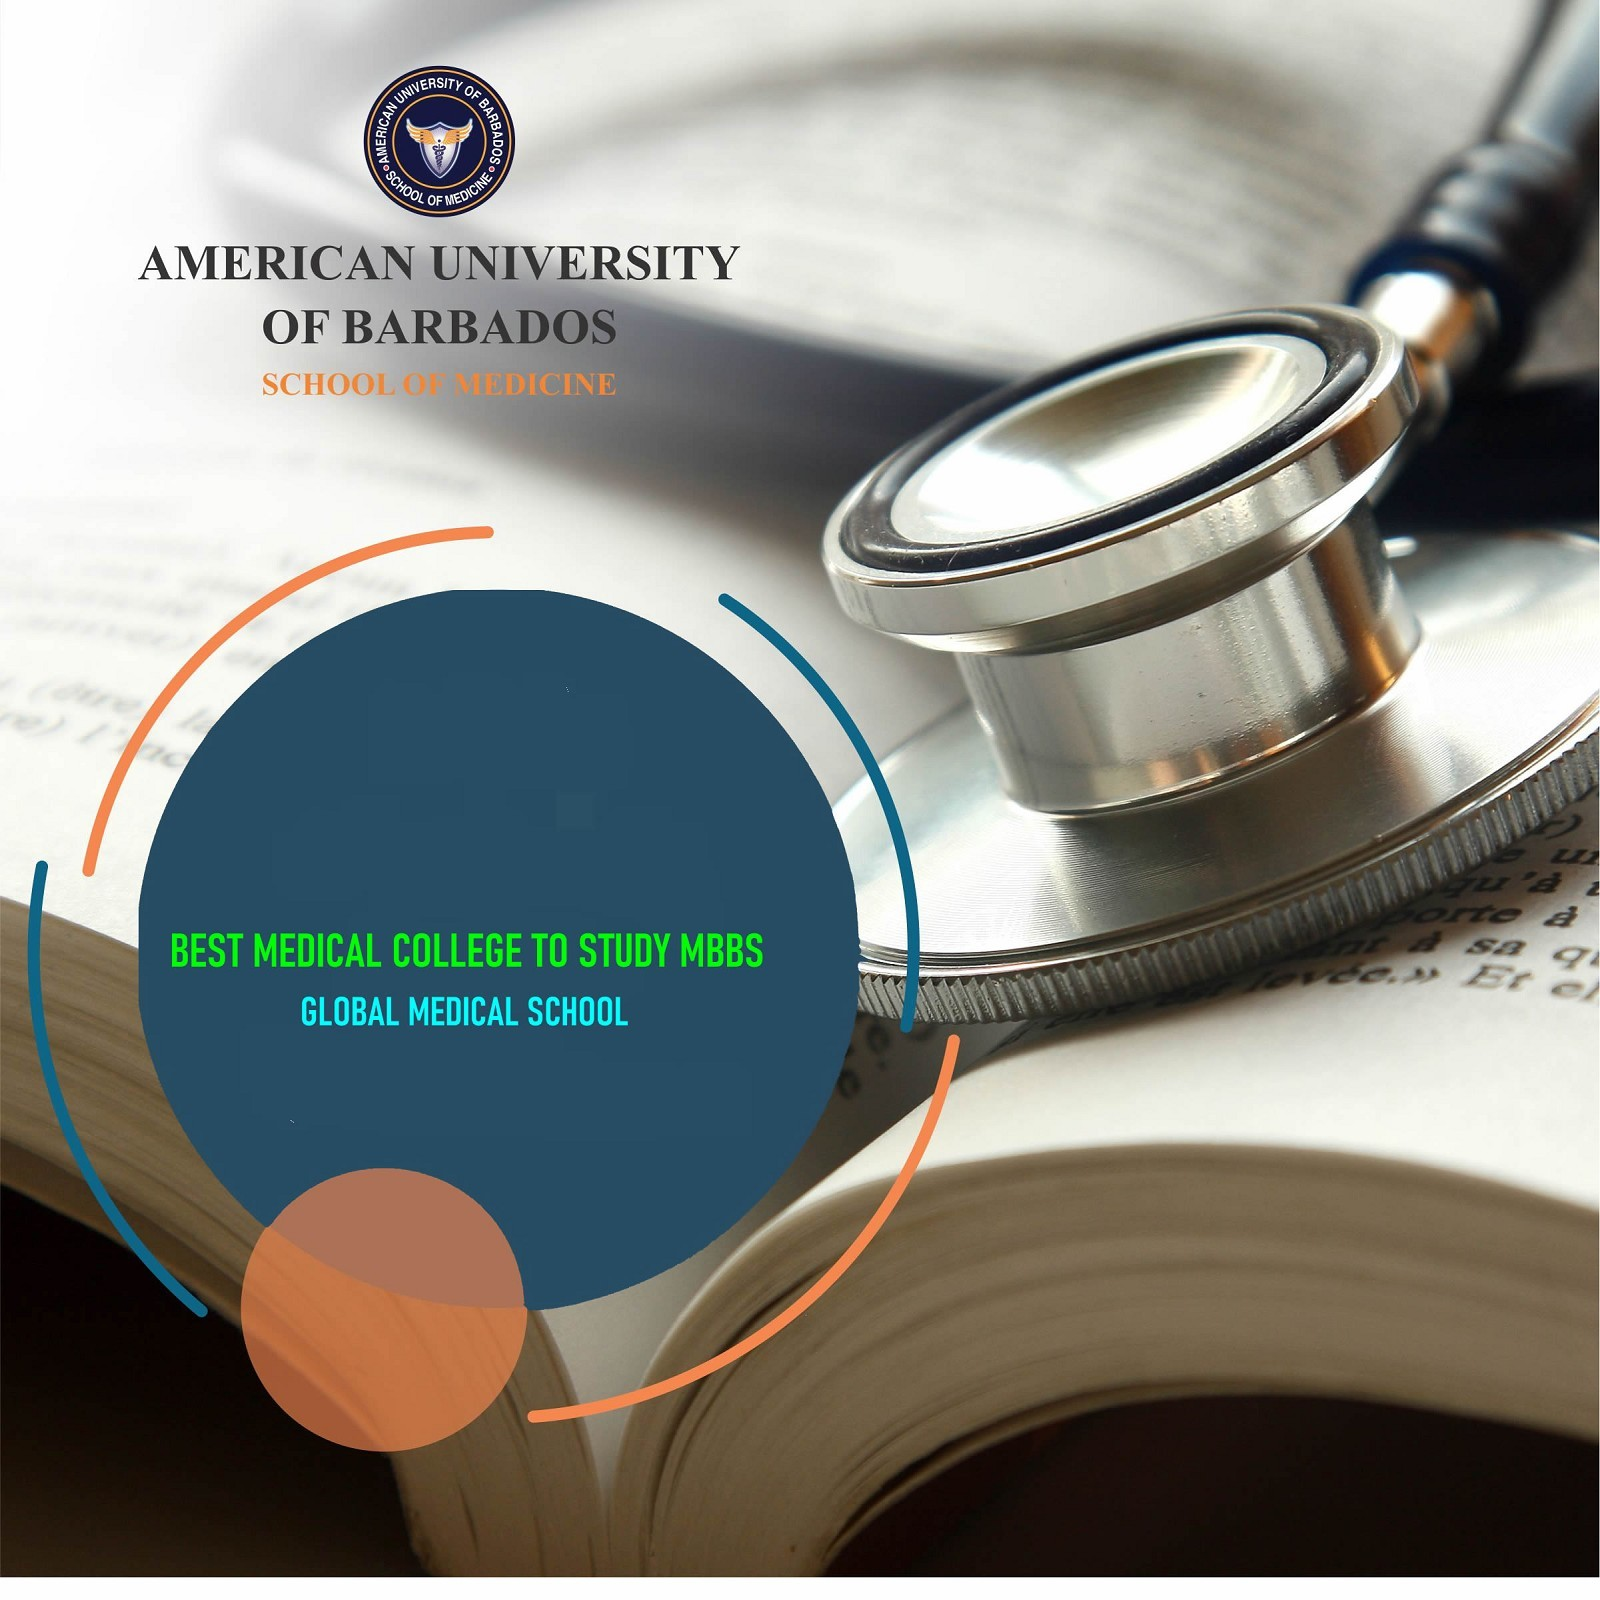 Best Medical Colleges to Study MBBS in Caribbean Islands